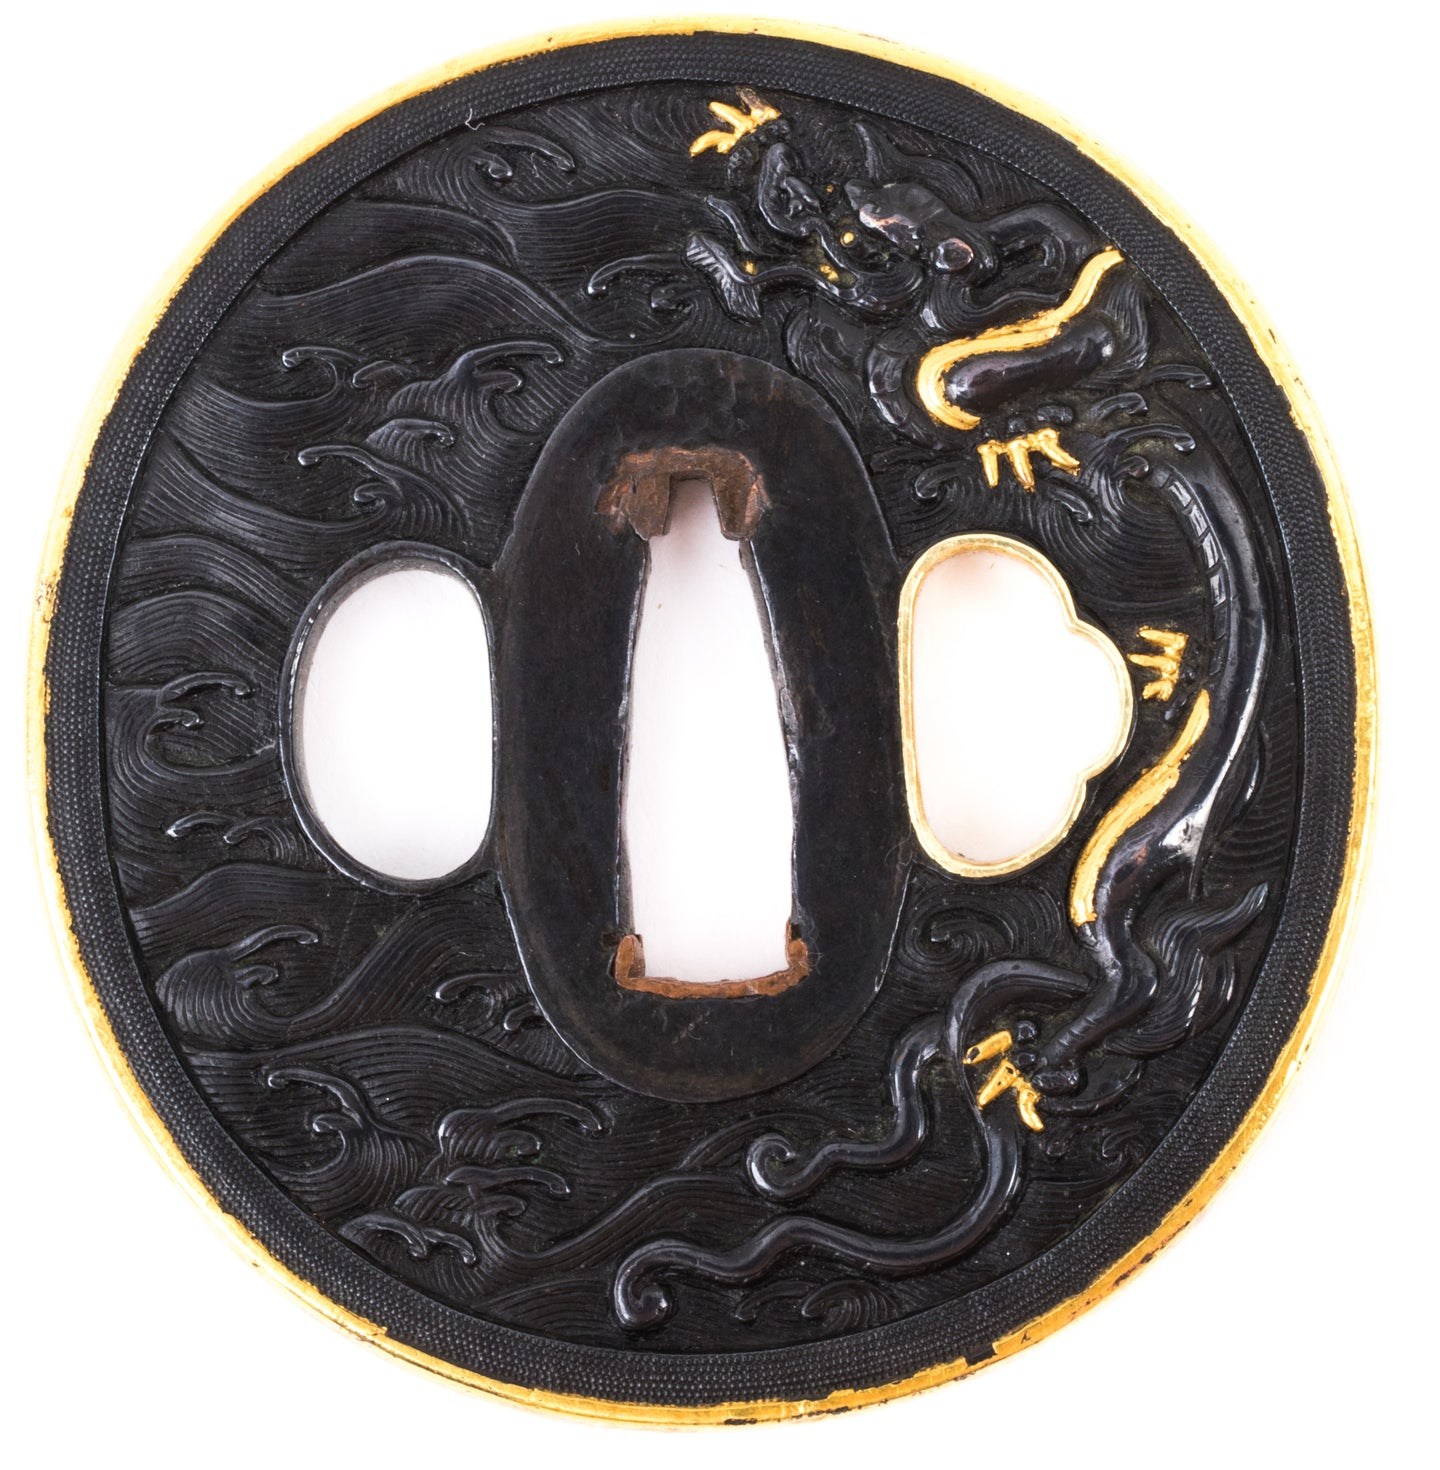 Kyoto Kinko Tsuba with NBTHK Hozon Tosogu - Dragons